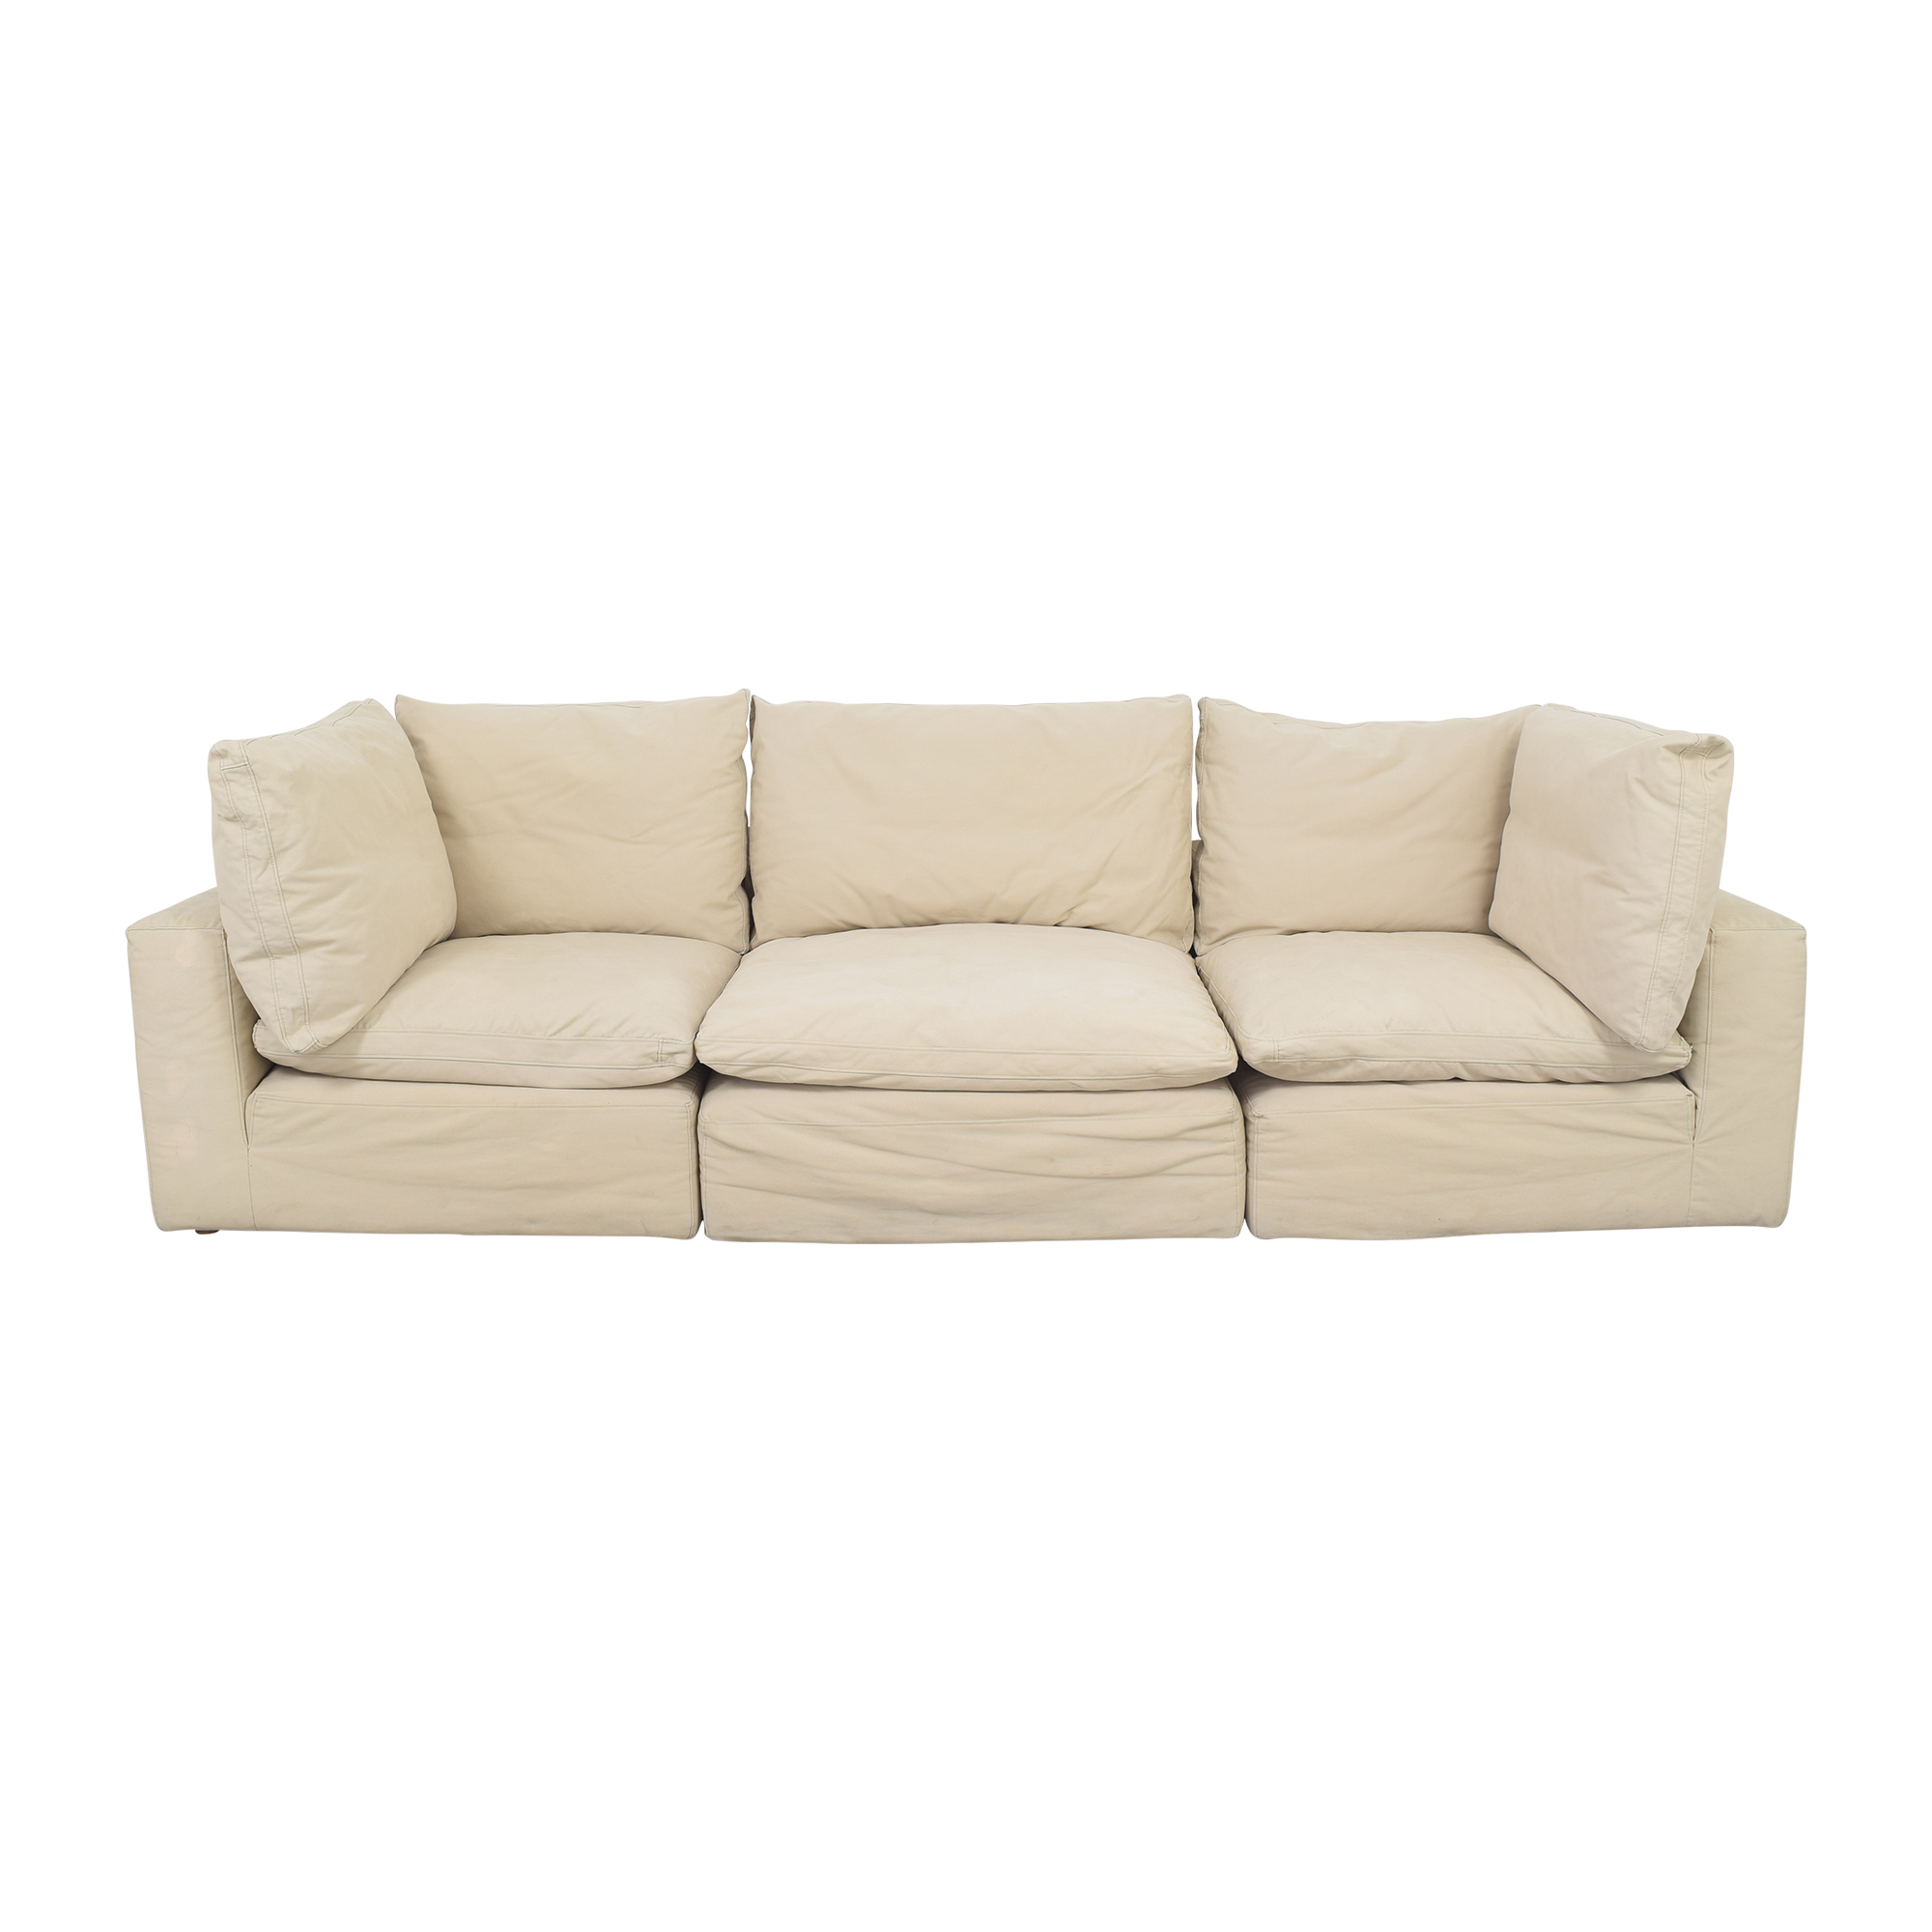 buy Restoration Hardware Restoration Hardware Cloud Modular Sofa online